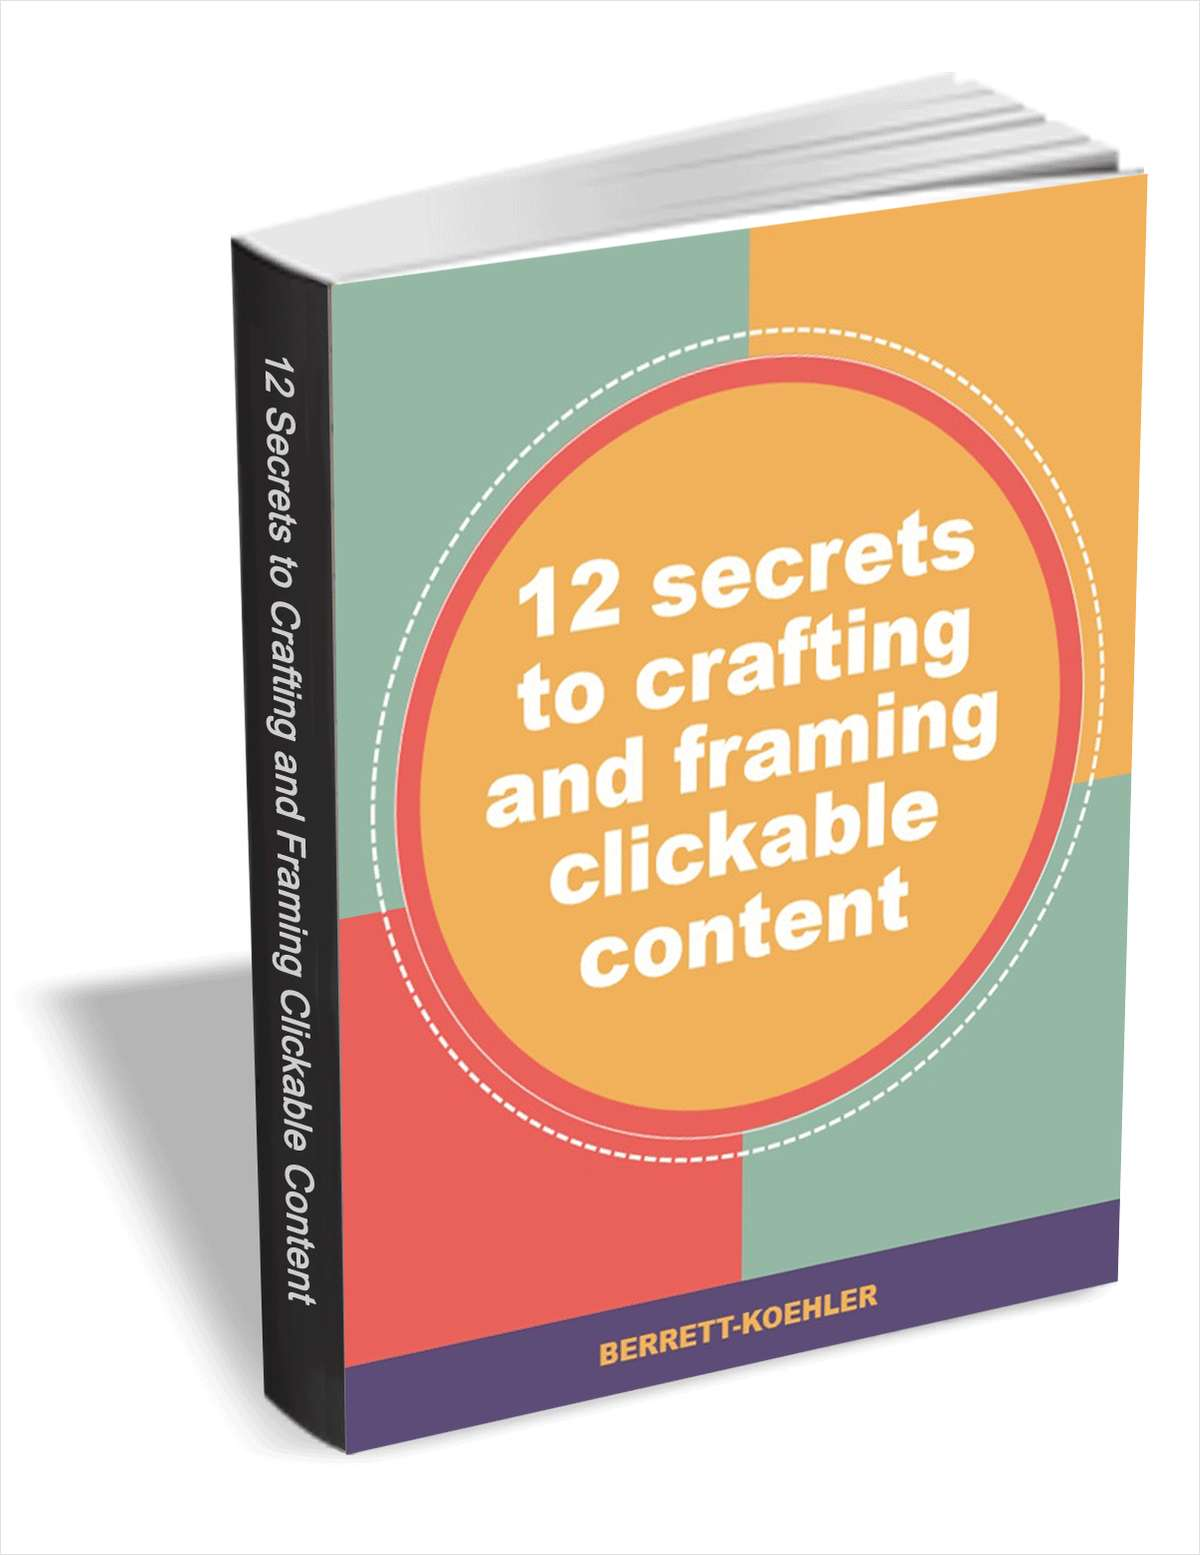 12 Secrets to Crafting and Framing Clickable Content